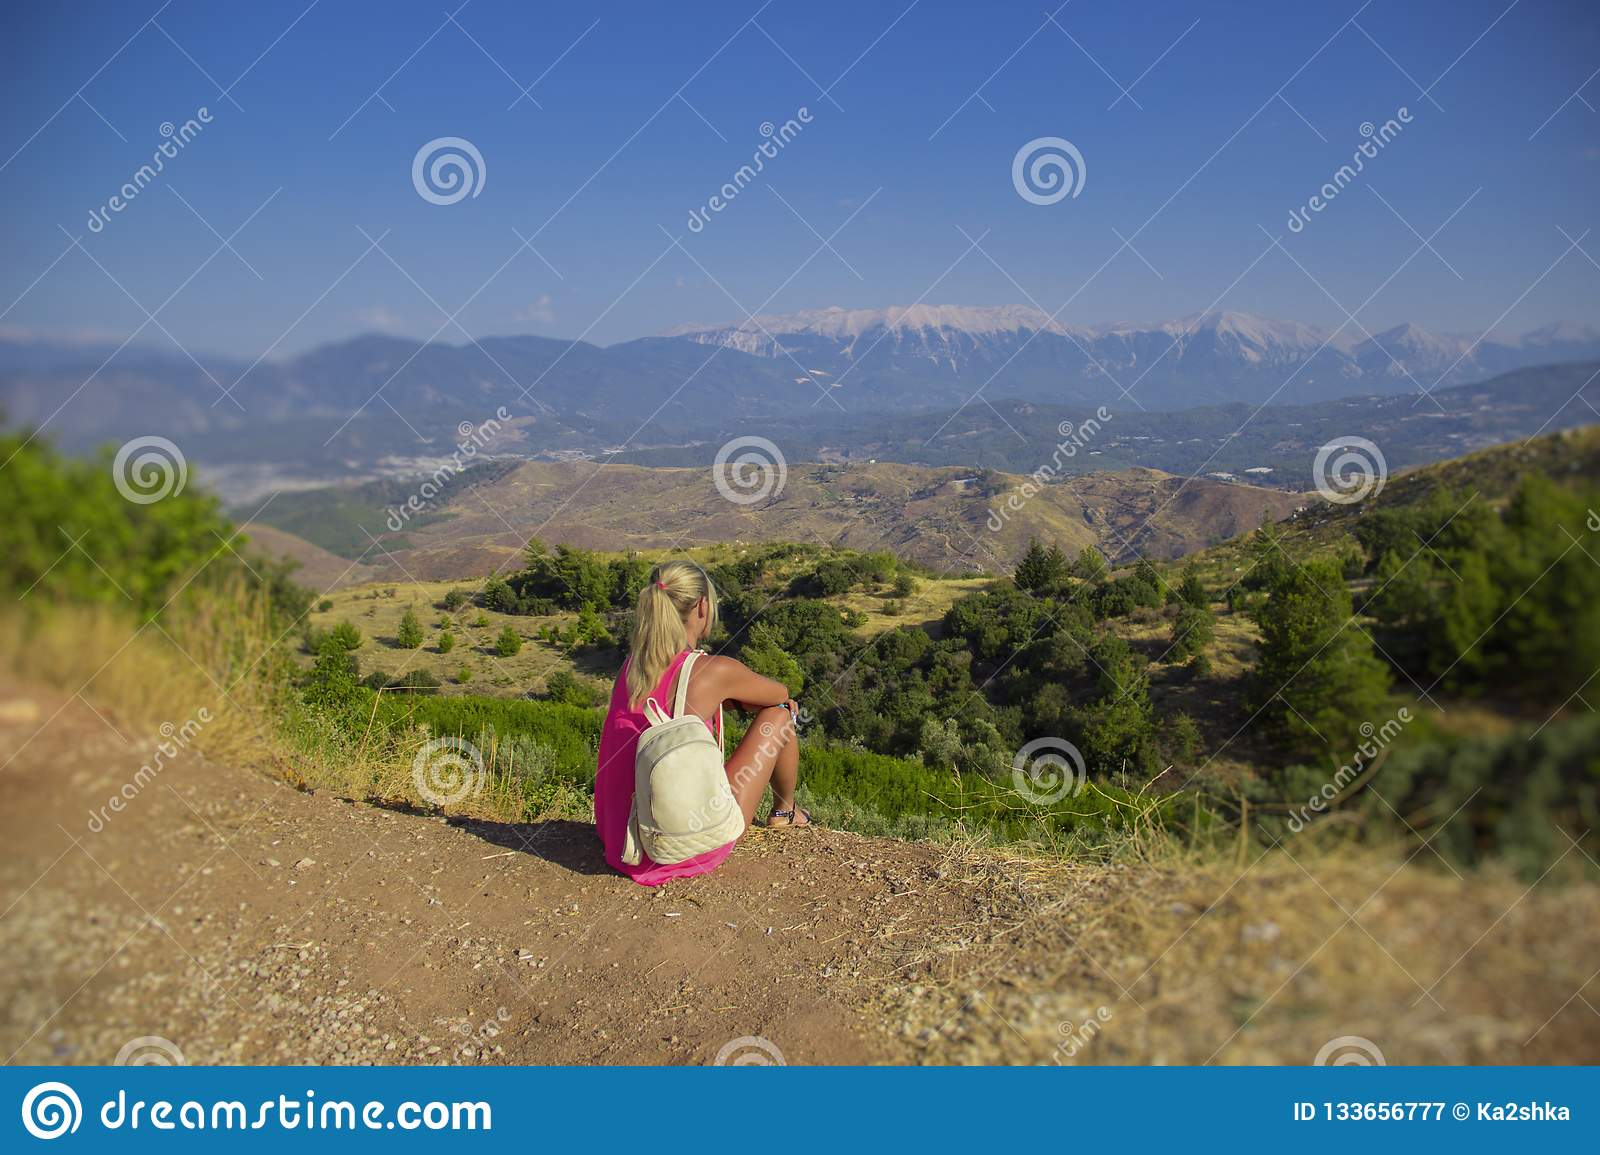 Young woman sitting at edge of cliff looking over expansive view of plains and mountains